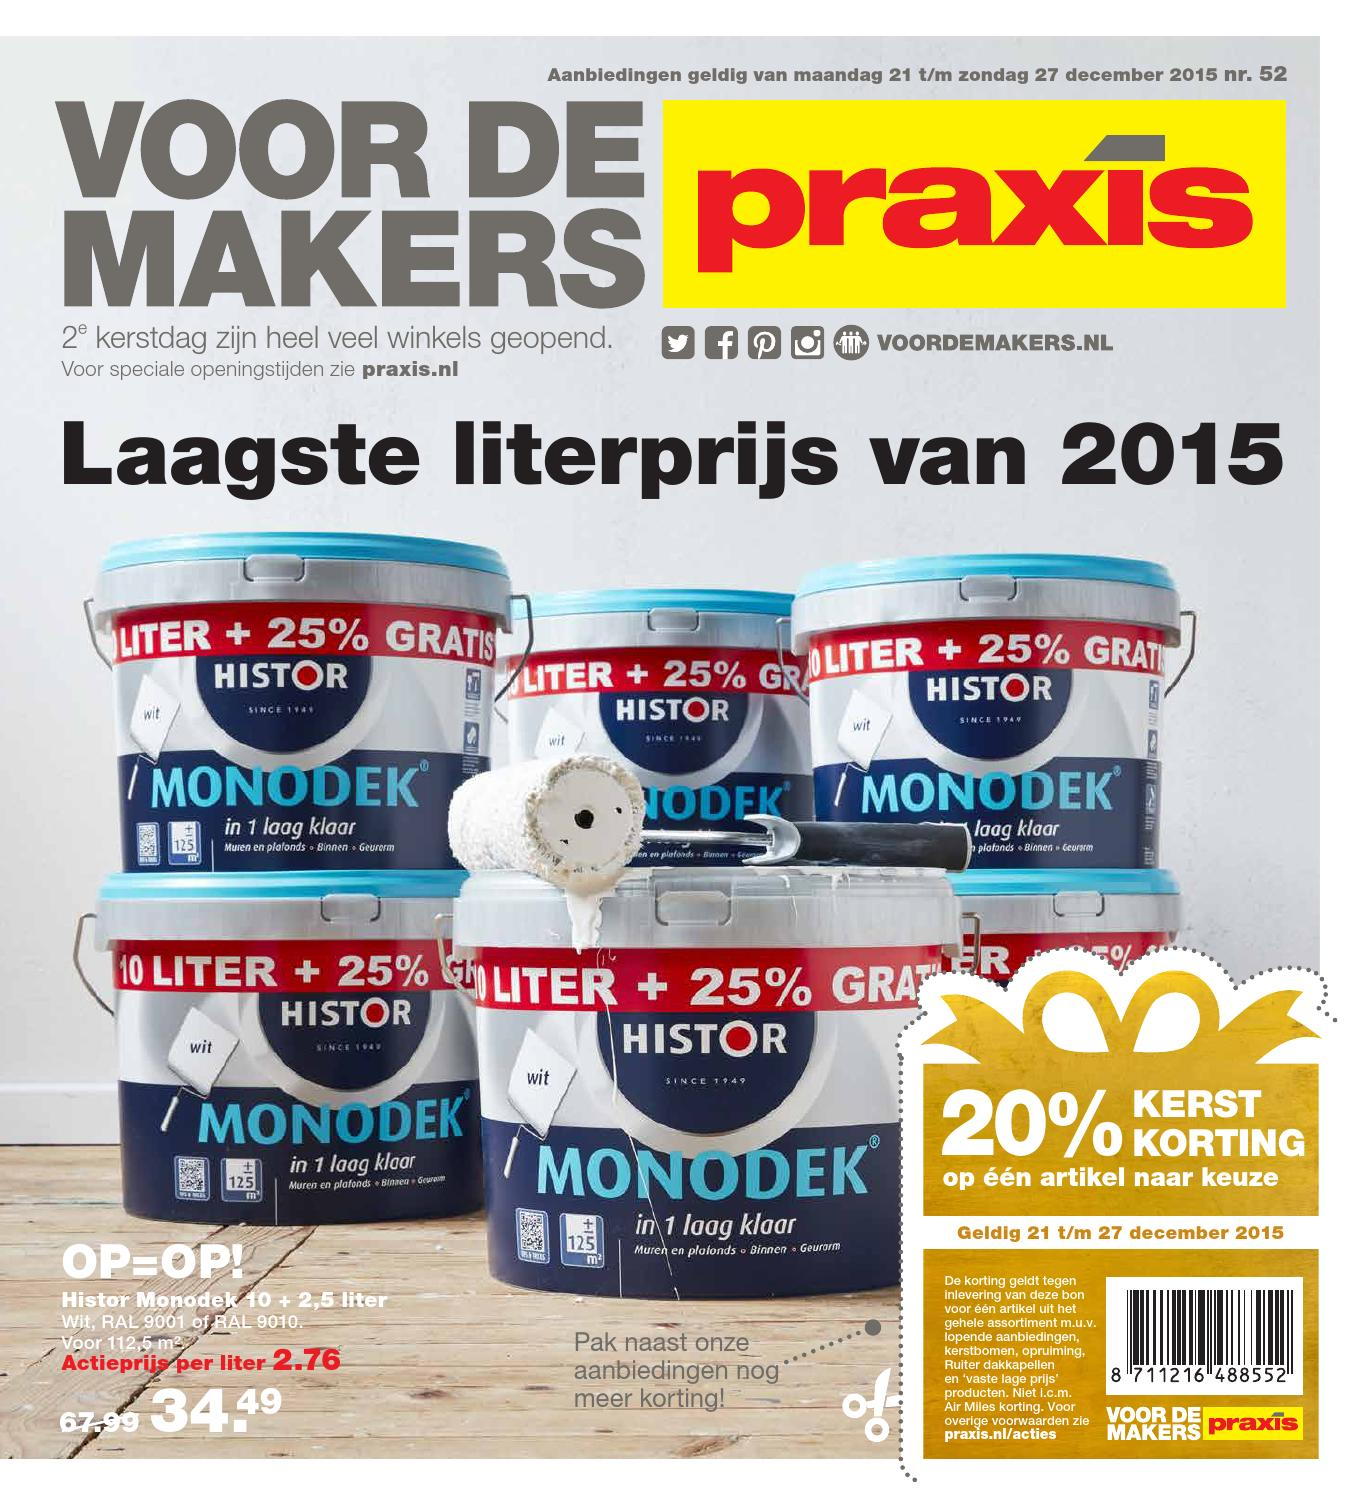 Flexa Strak In De Lak Aanbieding Praxis Praxis Folder Week 52 2015